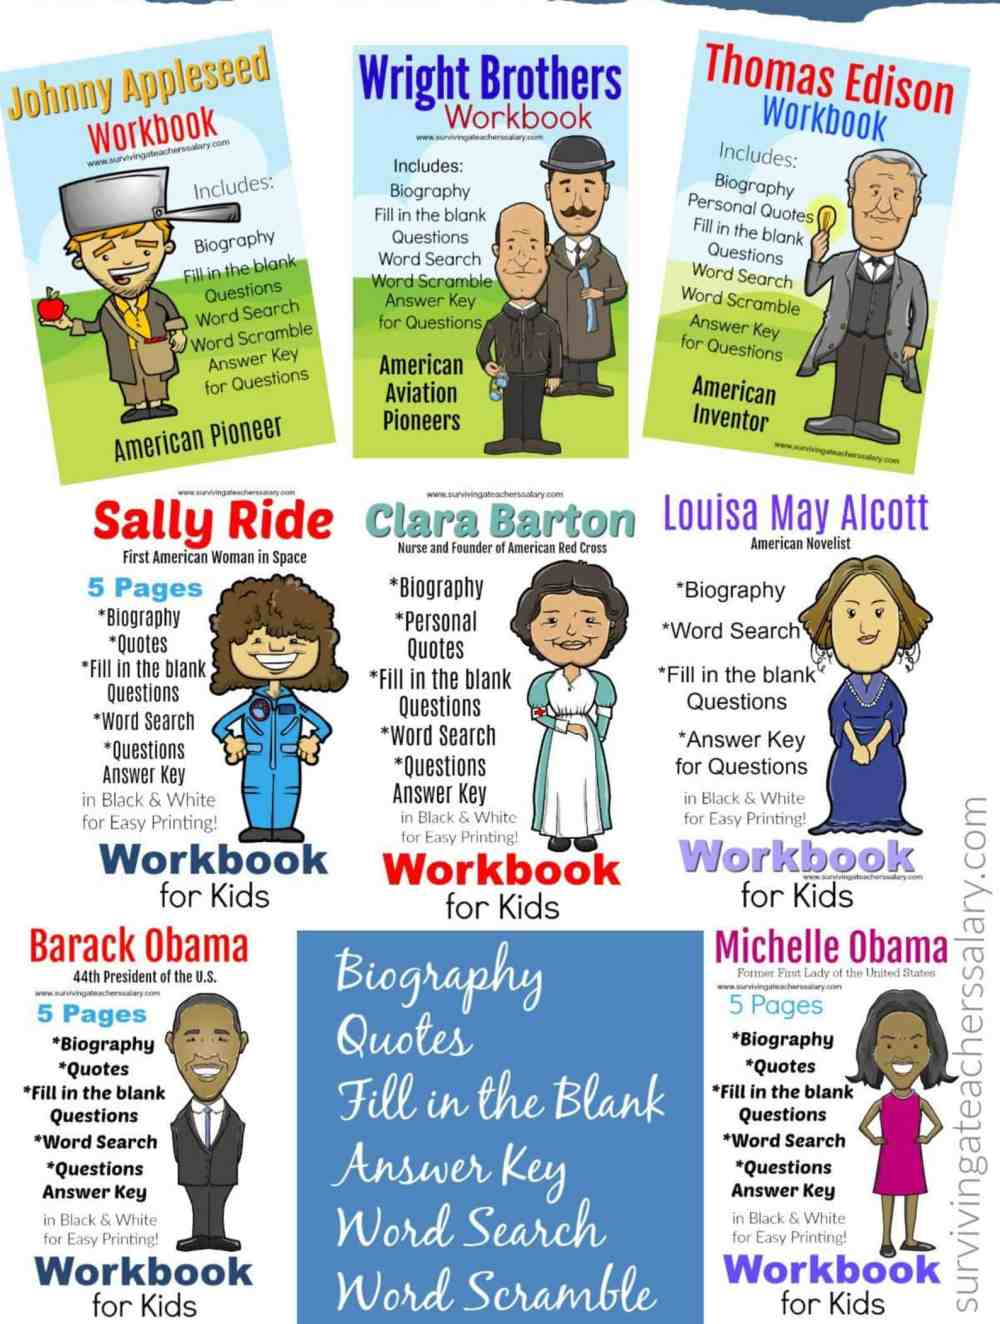 medium resolution of 11 Famous People in History Workbook - Presidents